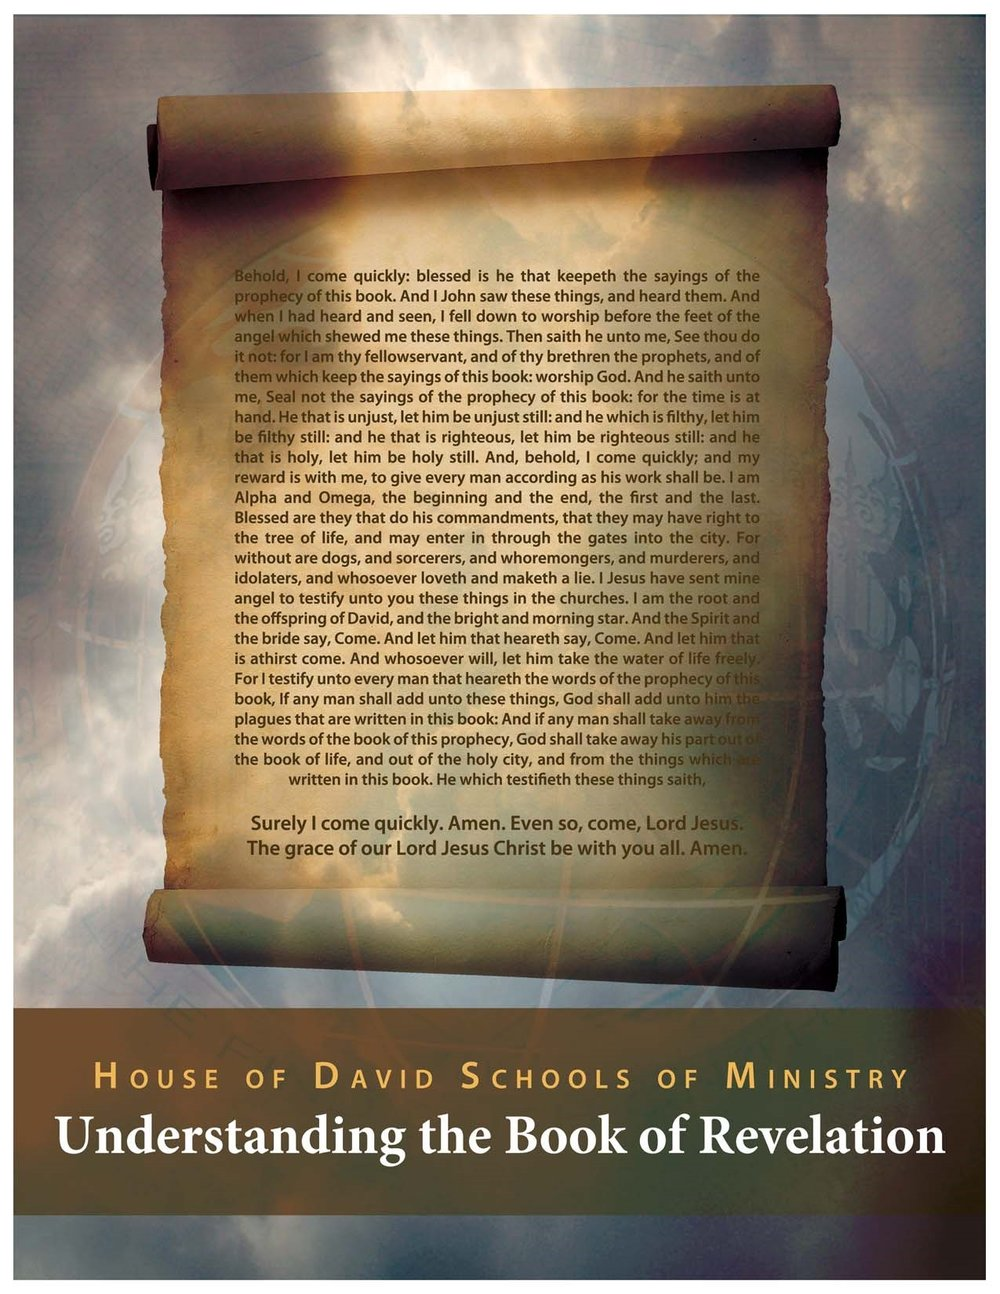 Understanding the Book of Revelation - Behold, I come quickly: hold that fast which thou hast, that no man take thy crown. Him that overcometh will I make a pillar in the temple of my God, and he shall go no more out: and I will write upon him the name of my God, and the name of the city of my God, which is new Jerusalem, which cometh down out of heaven from my God: and I will write upon him my new name. Revelations 3: 11-12So often Christians are asked questions regarding their faith, regarding the origin of religions, of man, of gods, the beginning of days, as well as the end of days, and many have no idea how to answer these questions. This course will give you knowledge using Biblical references regarding the many questions that both the Christian and non-believer has regarding who they are, who the true God is, God's intended relationship with them, and how all other religions (false teachings) came to be. If you have desired to understand biblical prophecy, including much of the Book of Revelation, then this course will bless you. You will learn what color the Lake of Fire is, and why it is that color. You will learn whether man will spend eternity in Heaven or someplace else, based on the King James Version of scripture. This course will teach you about the rapture of the Church and the various judgments that the Church will face, as well as the world. You will learn what the tribulation period is and what will happen during it. This course includes teachings on the millennium, and the fate of all who have ever died. You will learn about the eternal bodies that many will have throughout eternity. This course will cause you to grow and be able to address difficult questions that many have, including those of other religions. Imagine being able to explain to those of other religions how their beliefs (although false) came about. This course will also help you win people to Christ, for it not only gives you information about things, but also gives you a Christia